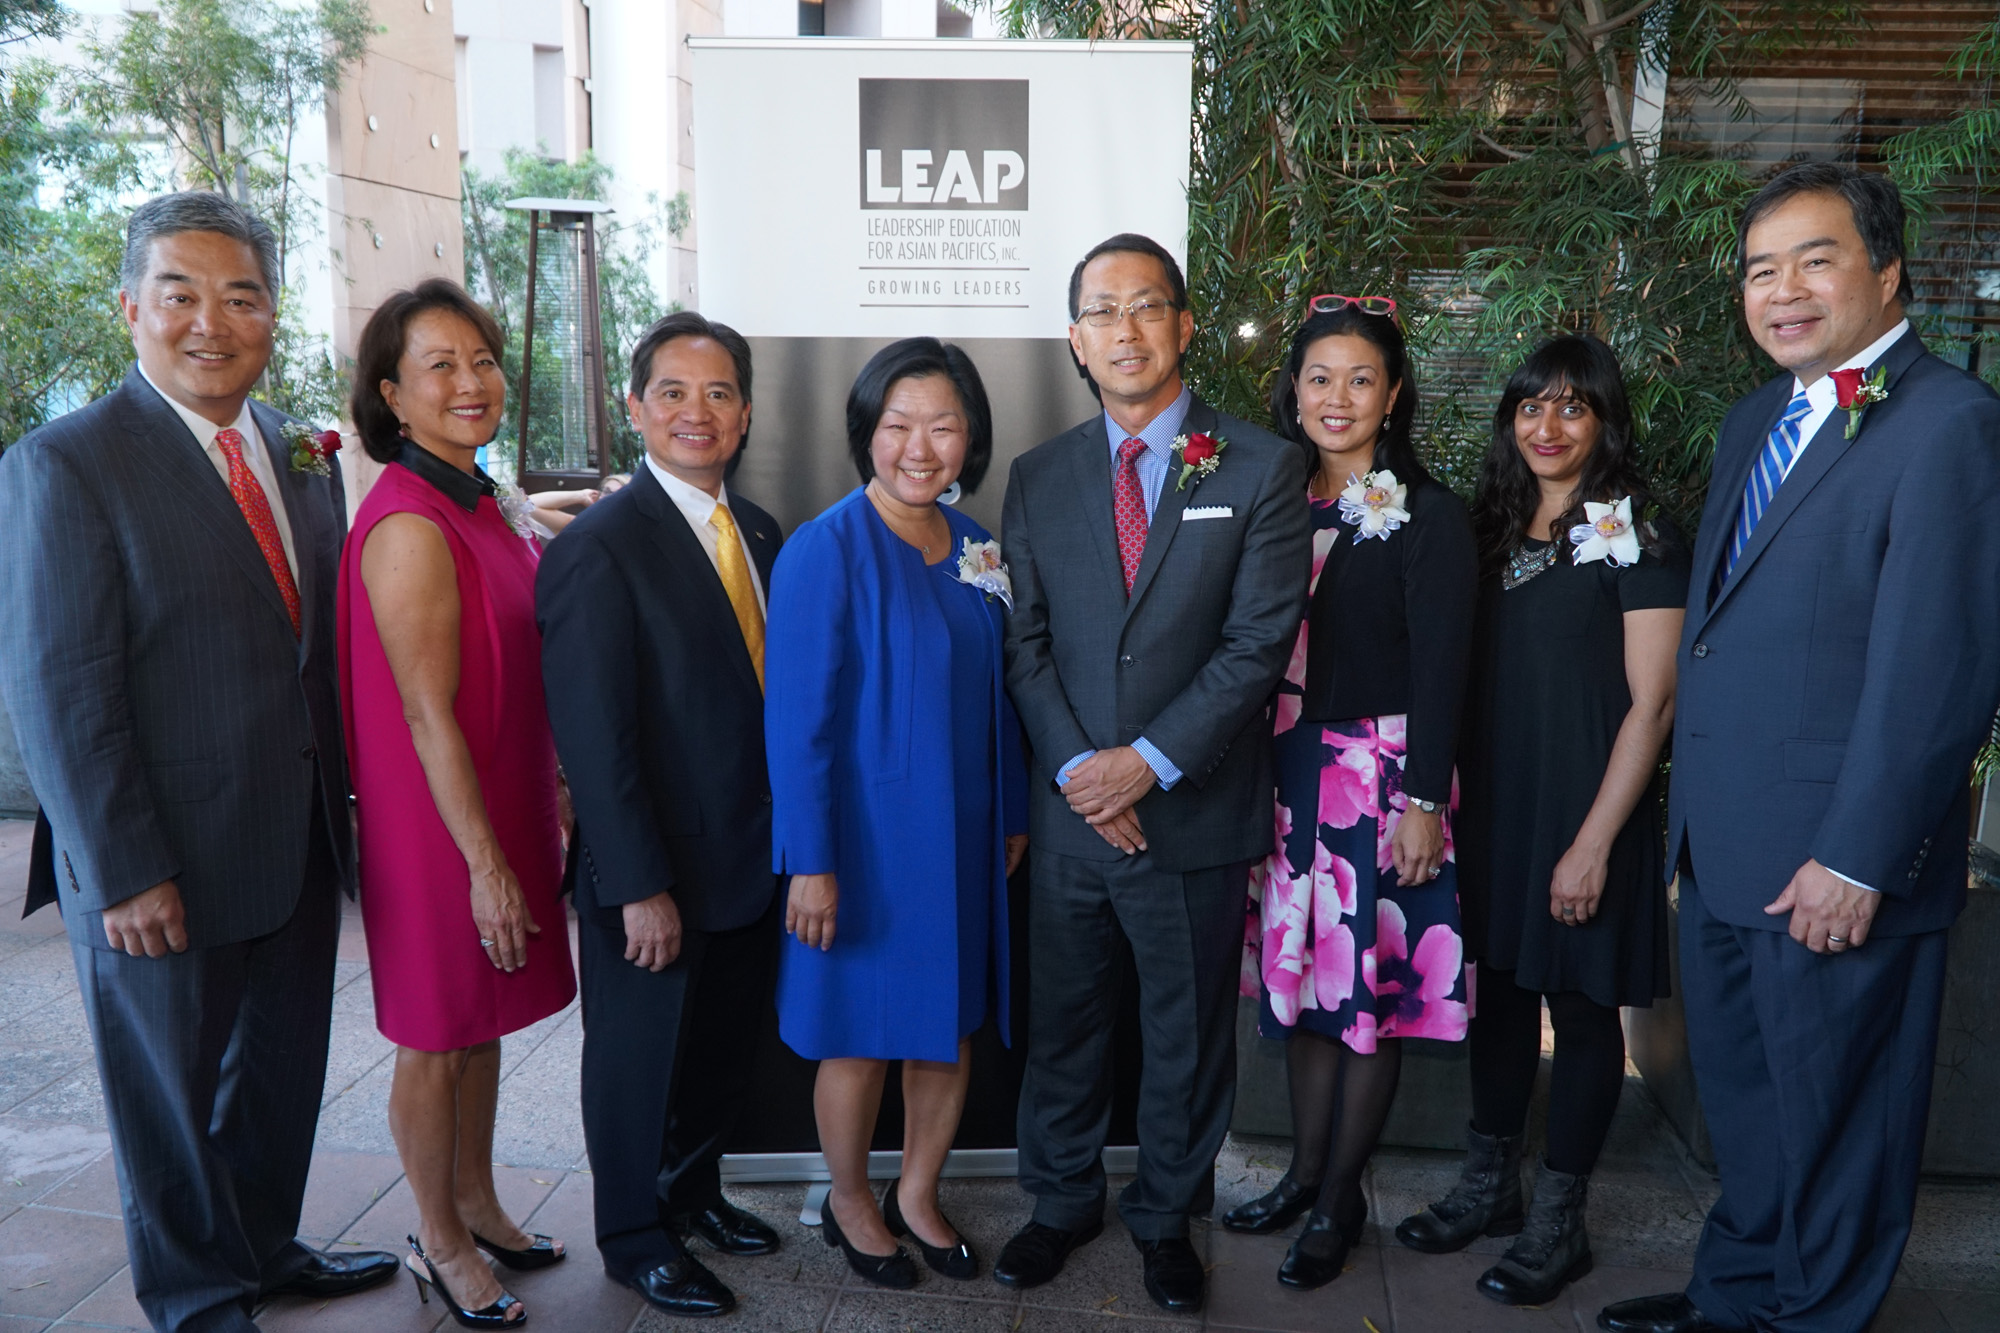 From left to right:  Willie C. Chiang, Phyllis J. Cambell, Kenneth Chung (LEAP Board Chair), Linda Akutagawa (LEAP President & CEO), KC Choi, Andrea Louie and Anjali Goyal (on behalf of the Asian American Arts Alliance), and A. Gabriel Esteban